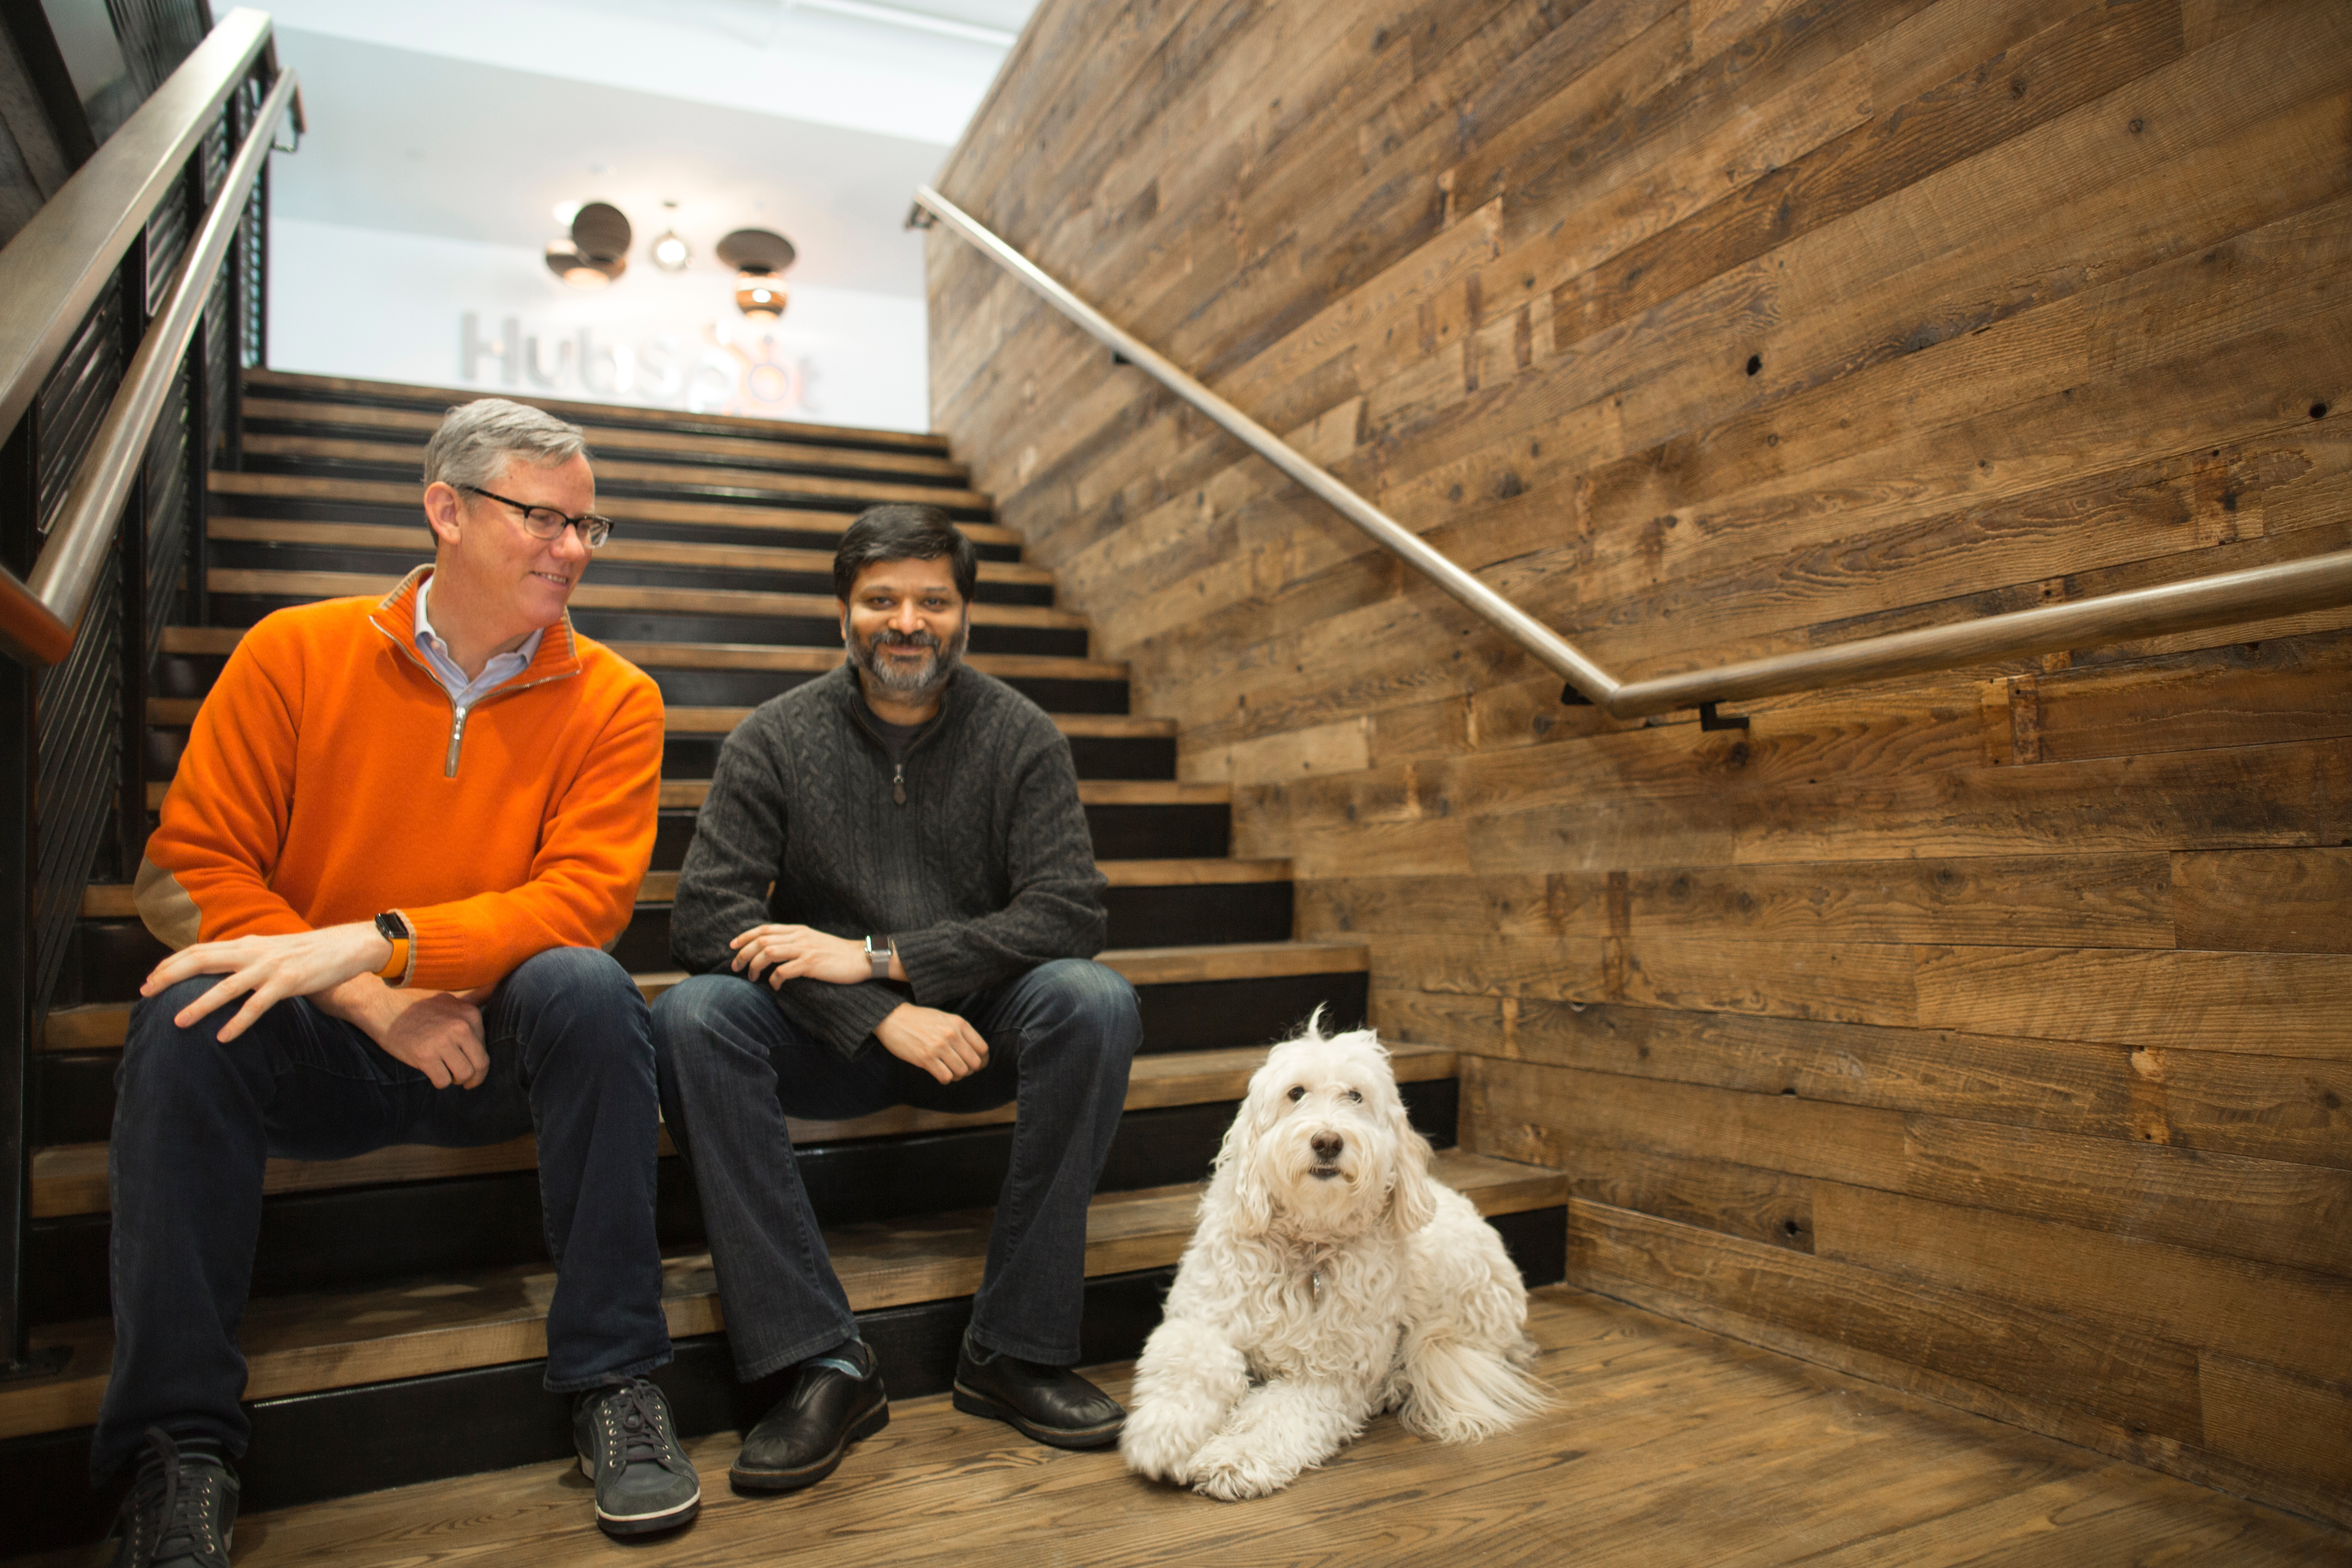 HubSpot Named to Inc.'s Founders 40 for Newly Public Companies Driving Innovation